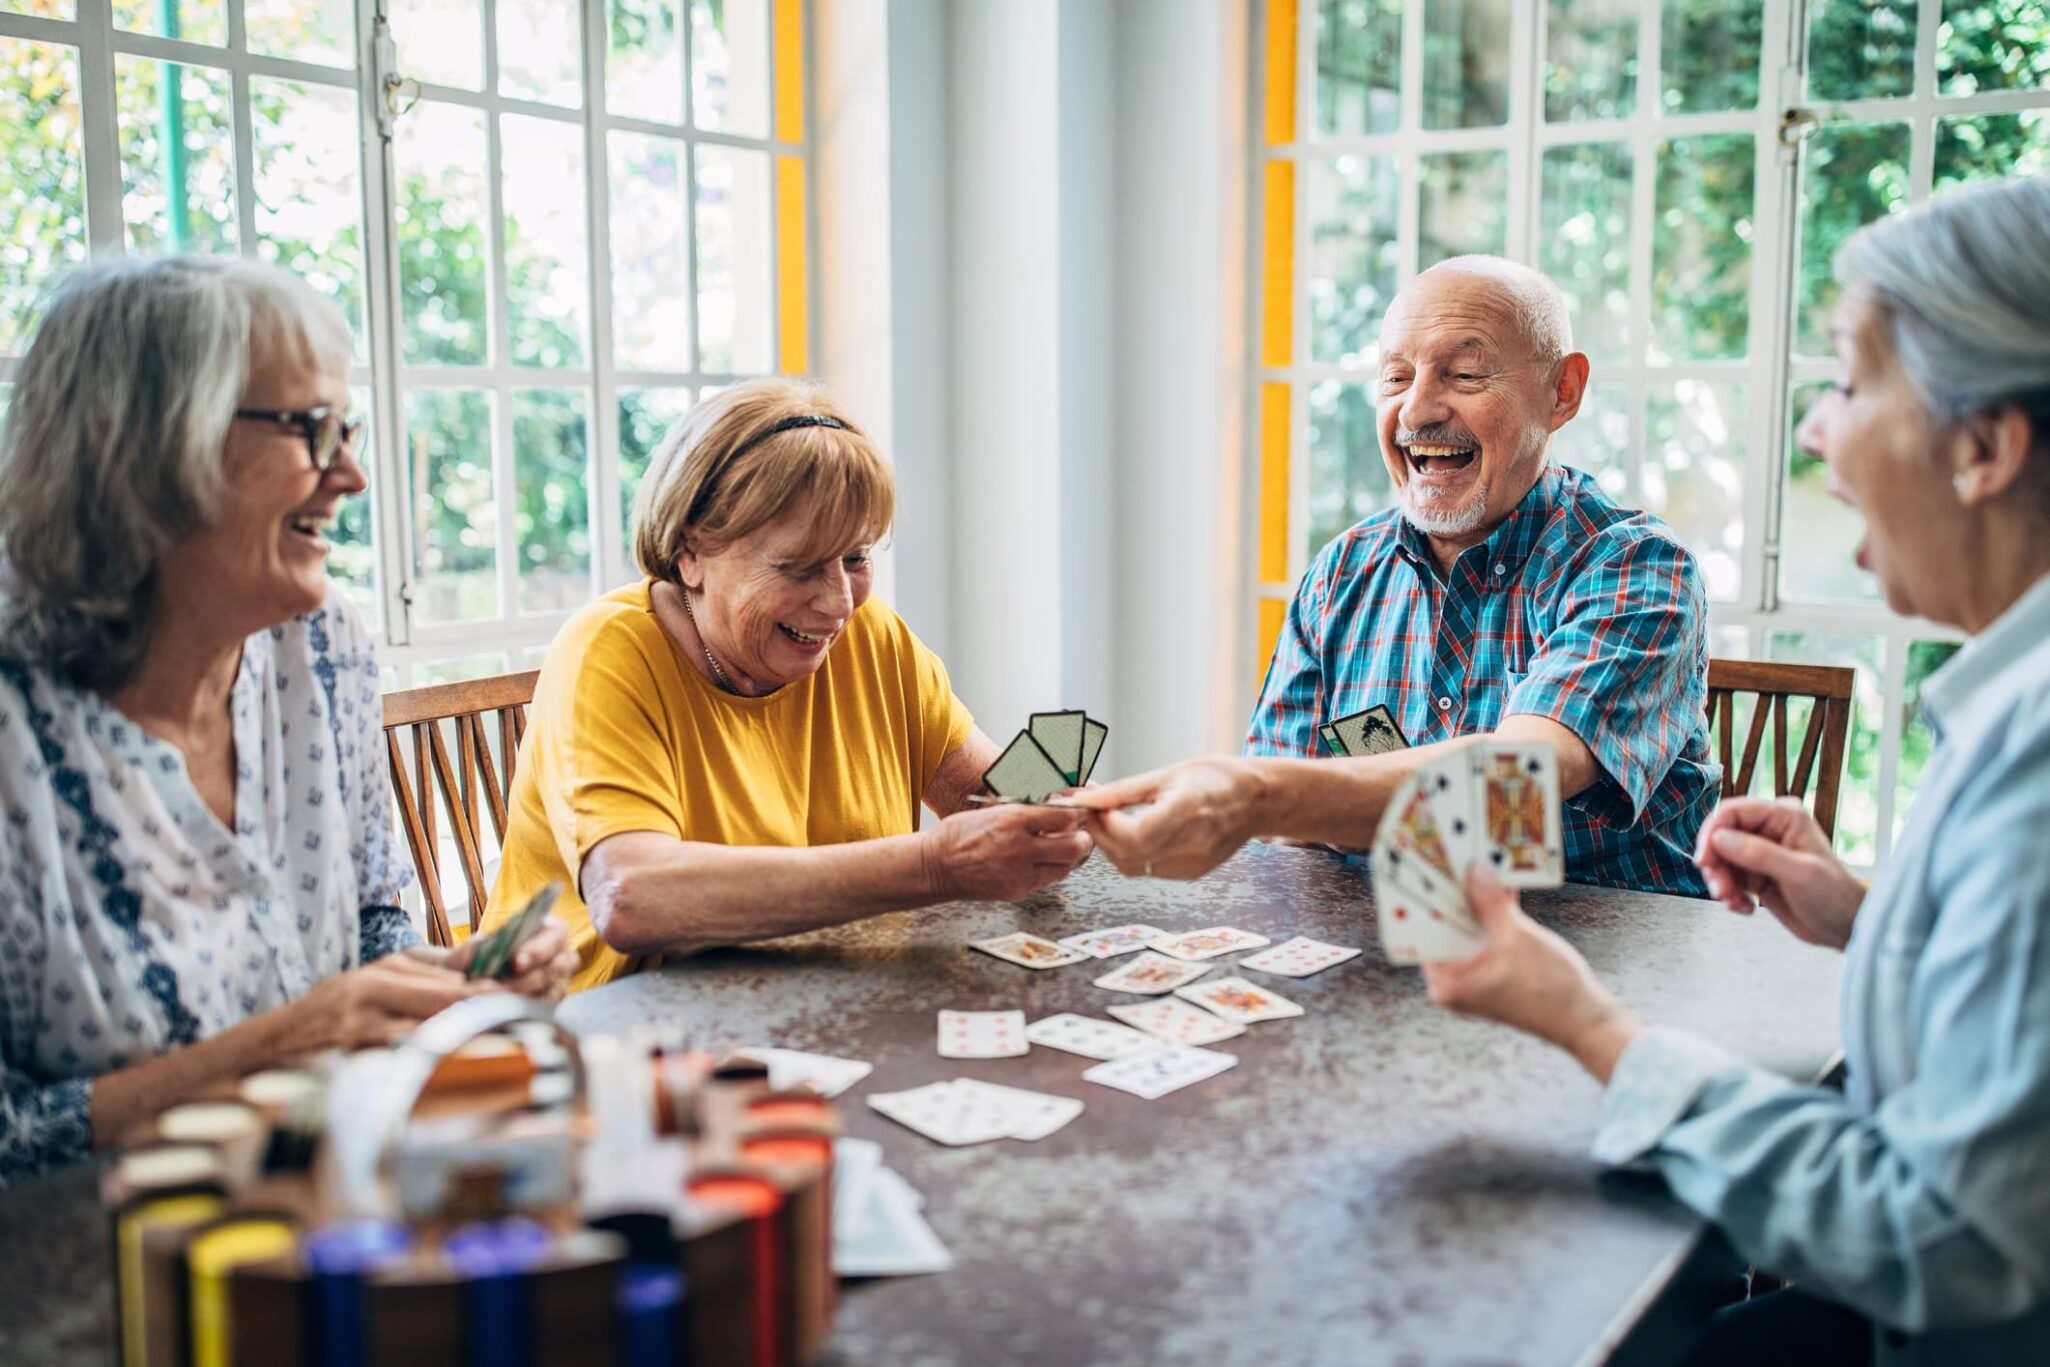 Group of older adults sitting around a table and having fun playing cards.